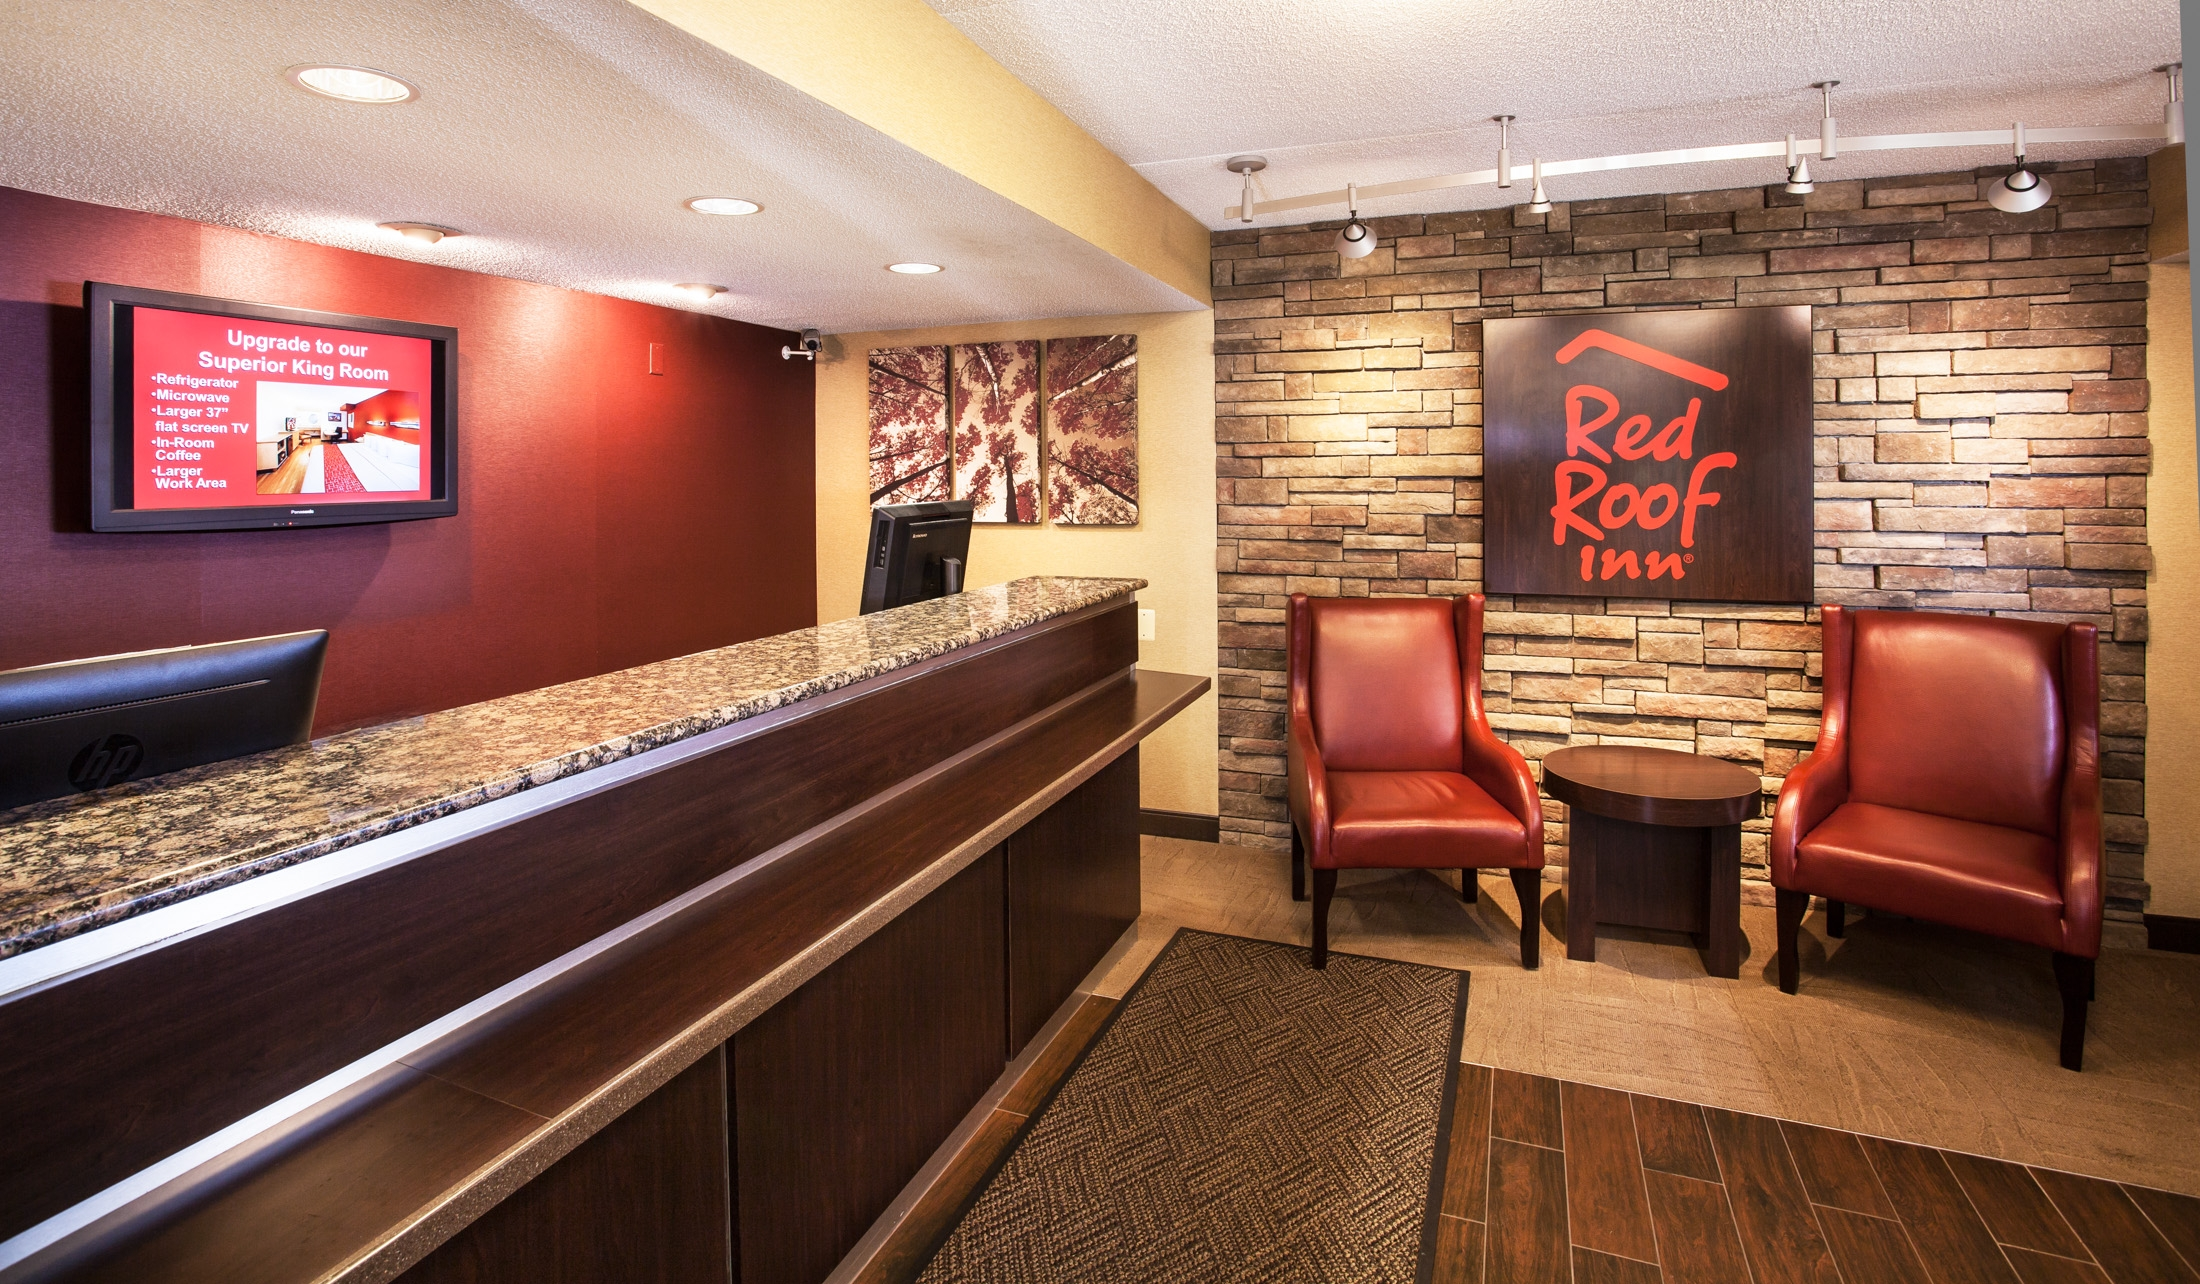 Red Roof Inn Military Promotion + 5 Winter Hot Spots For Military Families